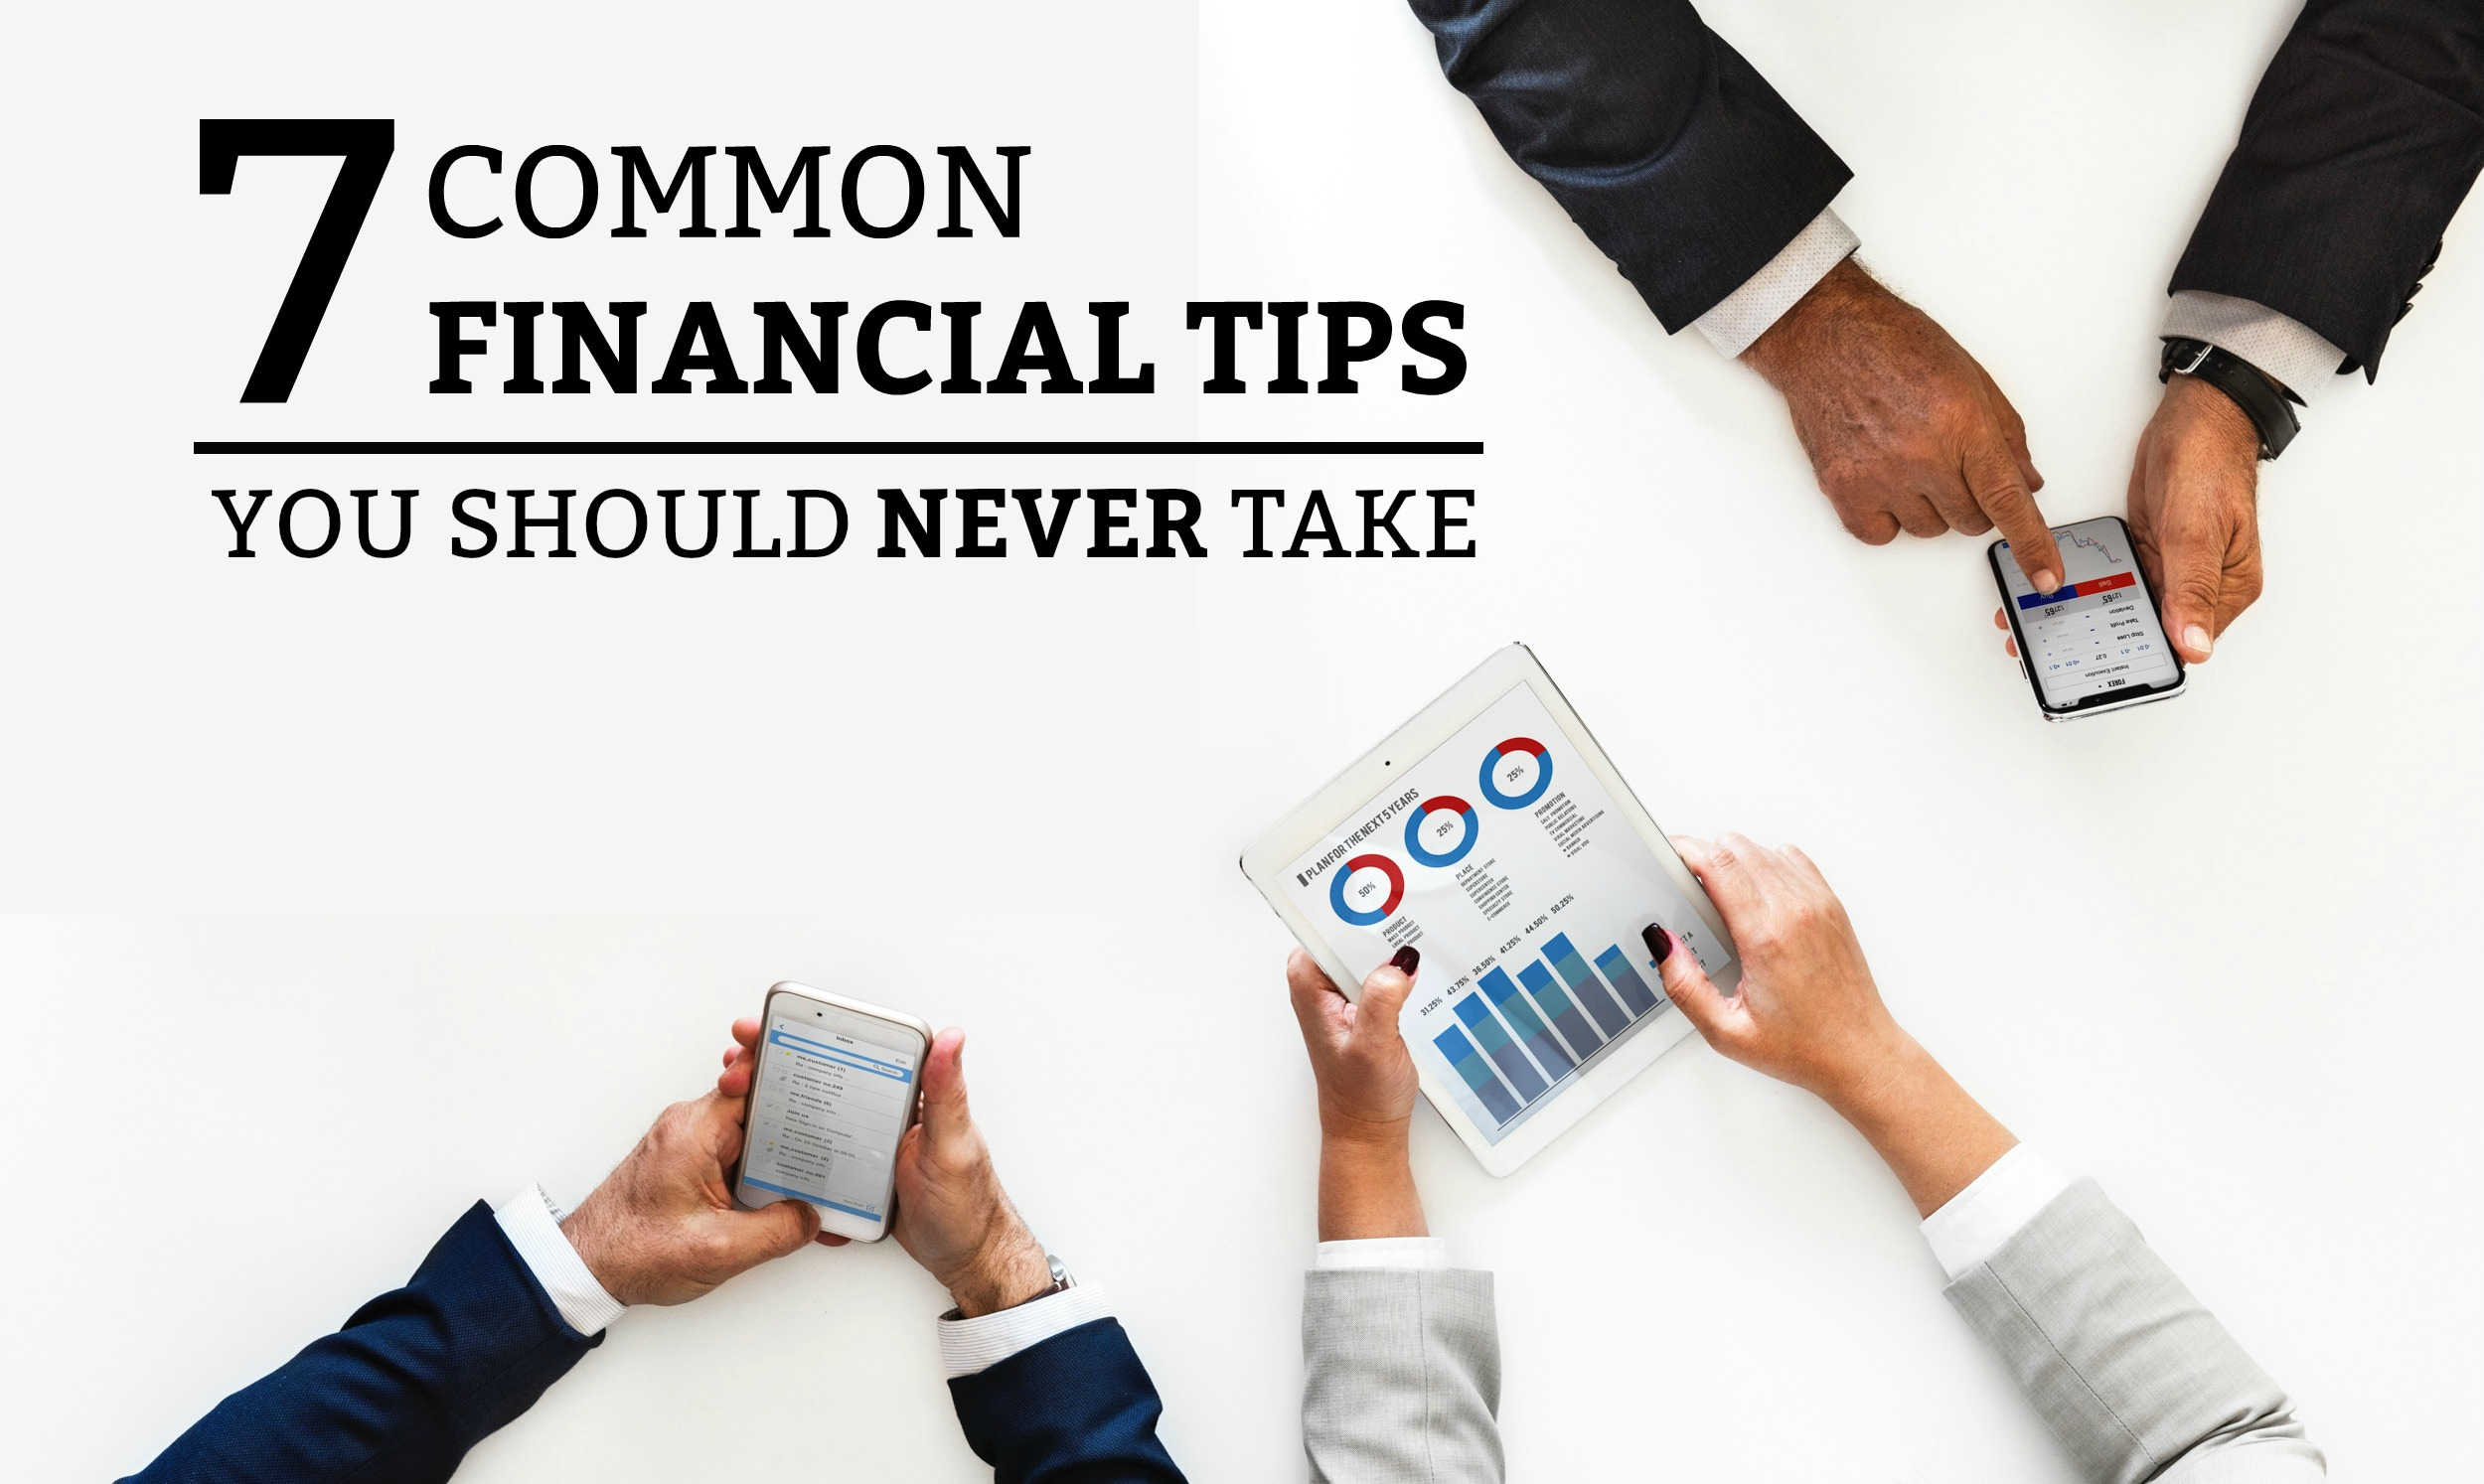 7 Common Financial Tips You Should Never Take - a practical guide on what pieces of financial advice you should never listen to! www.tradingaverage.com